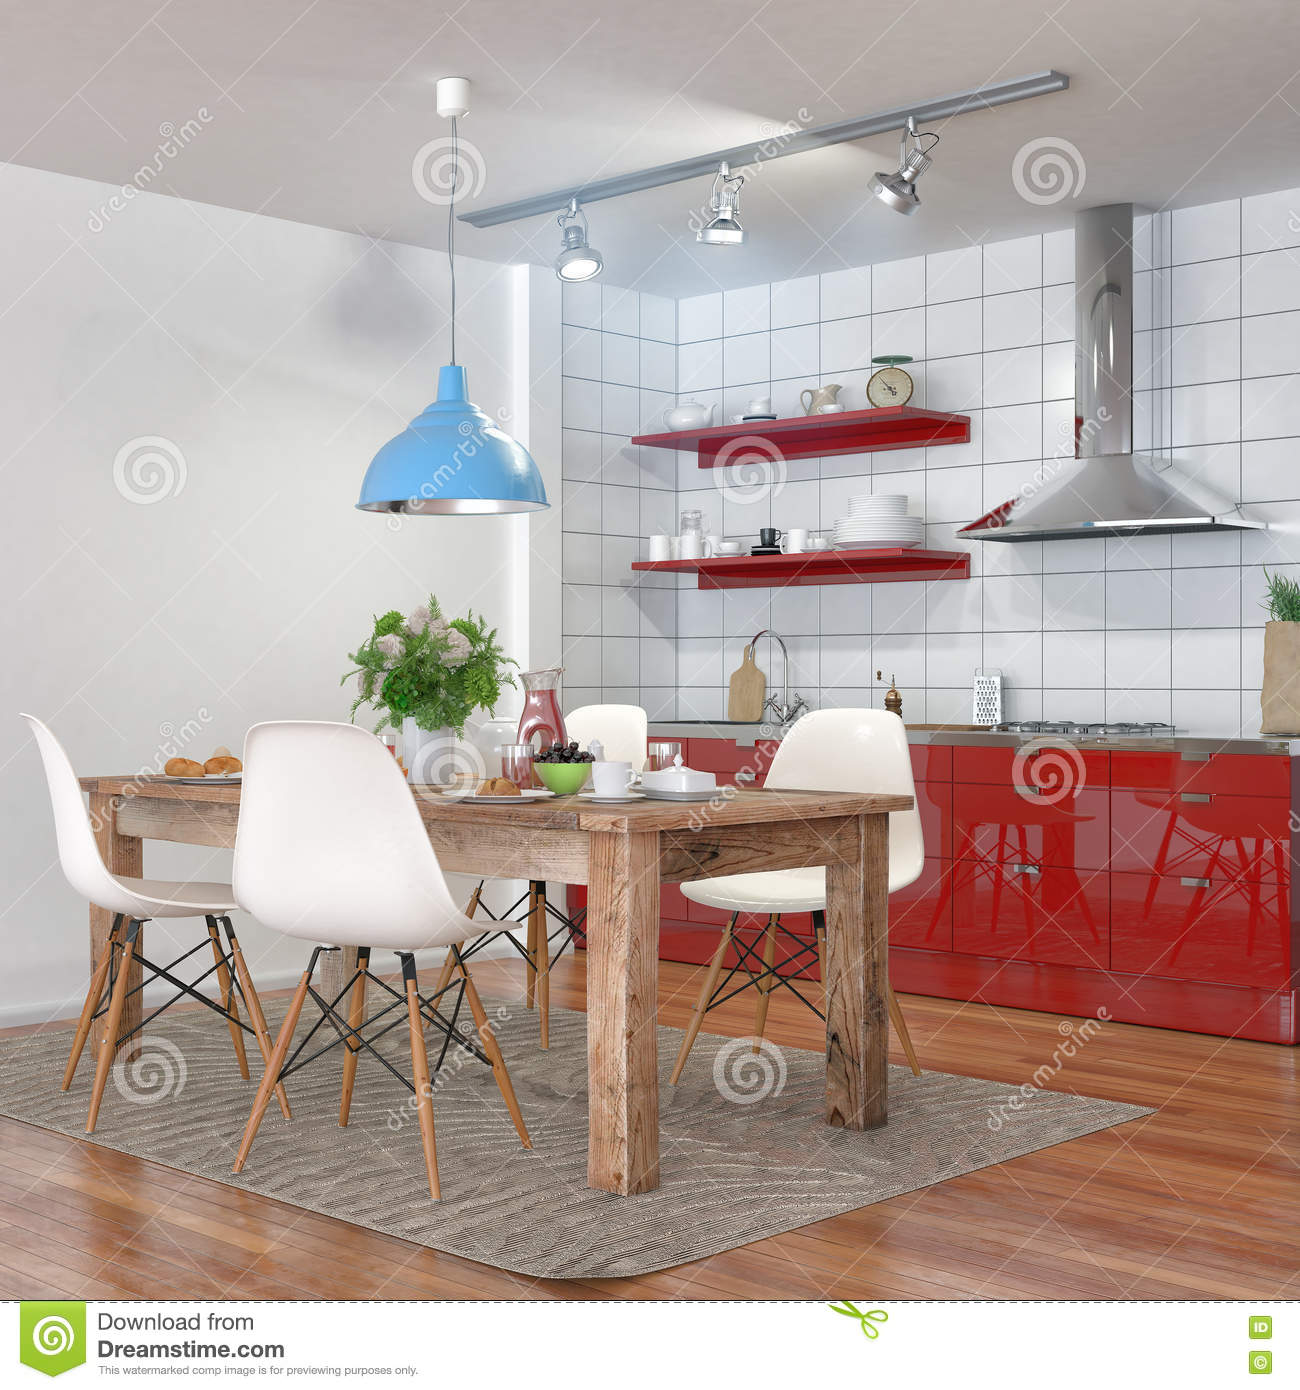 Modern Kitchen Interior With Dining Area Stock